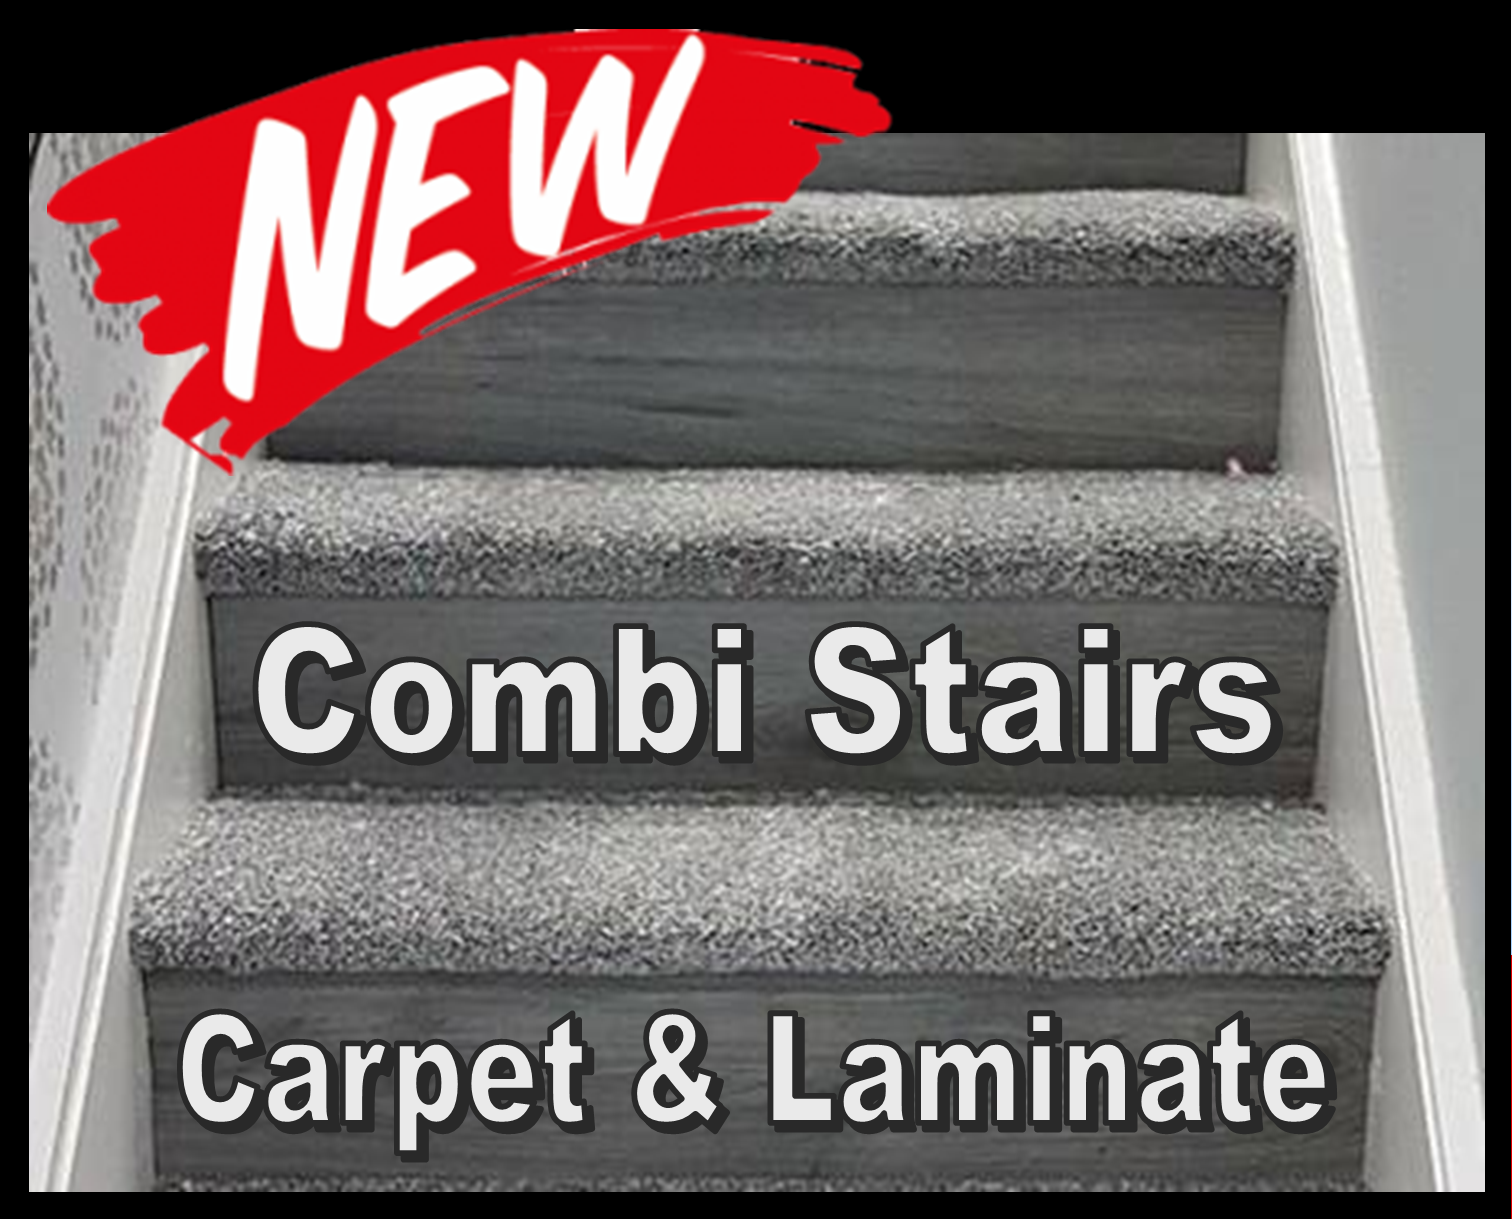 Ideal for Combi Stairs, Carpet and Laminate from Carpets Weekly